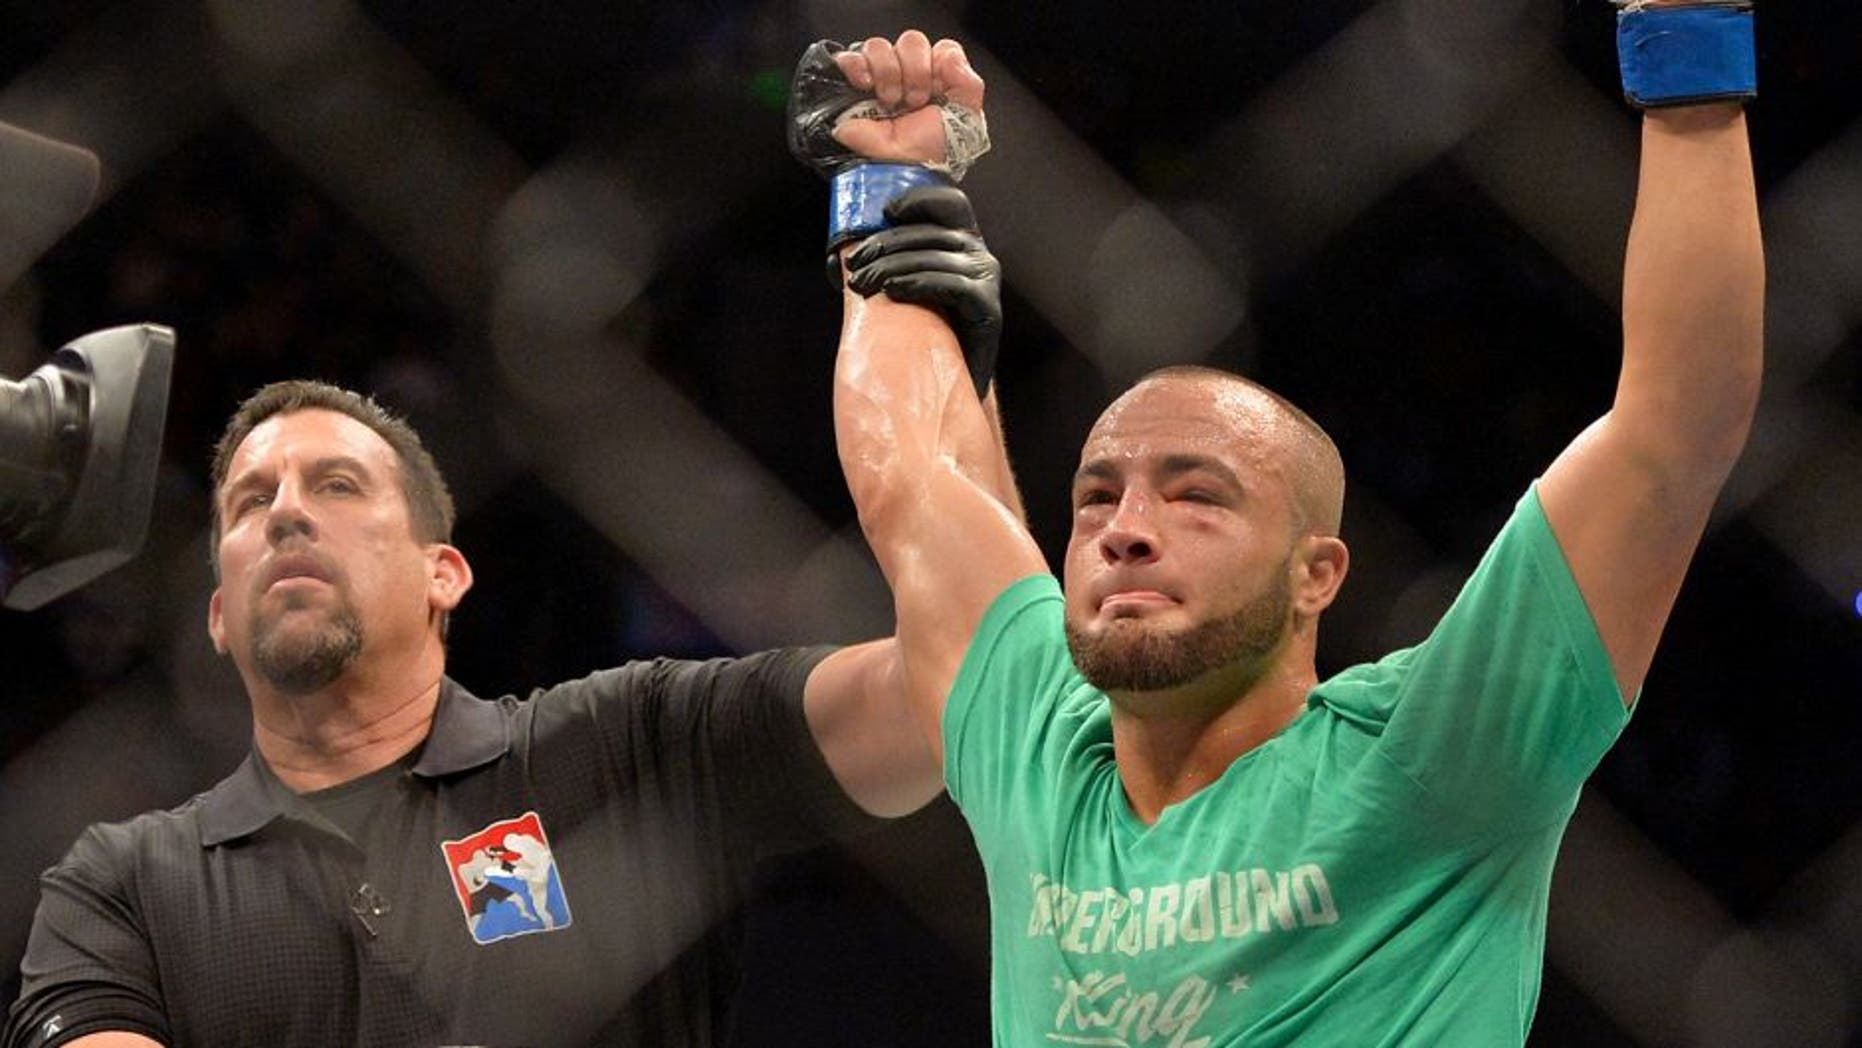 MEXICO CITY, MEXICO - JUNE 13: Eddie Alvarez of the United States celebrates his victory over Gilbert Melendez of the United States in their lightweight bout during the UFC 188 event at the Arena Ciudad de Mexico on June 13, 2015 in Mexico City, Mexico. (Photo by Jeff Bottari/Zuffa LLC/Zuffa LLC via Getty Images)